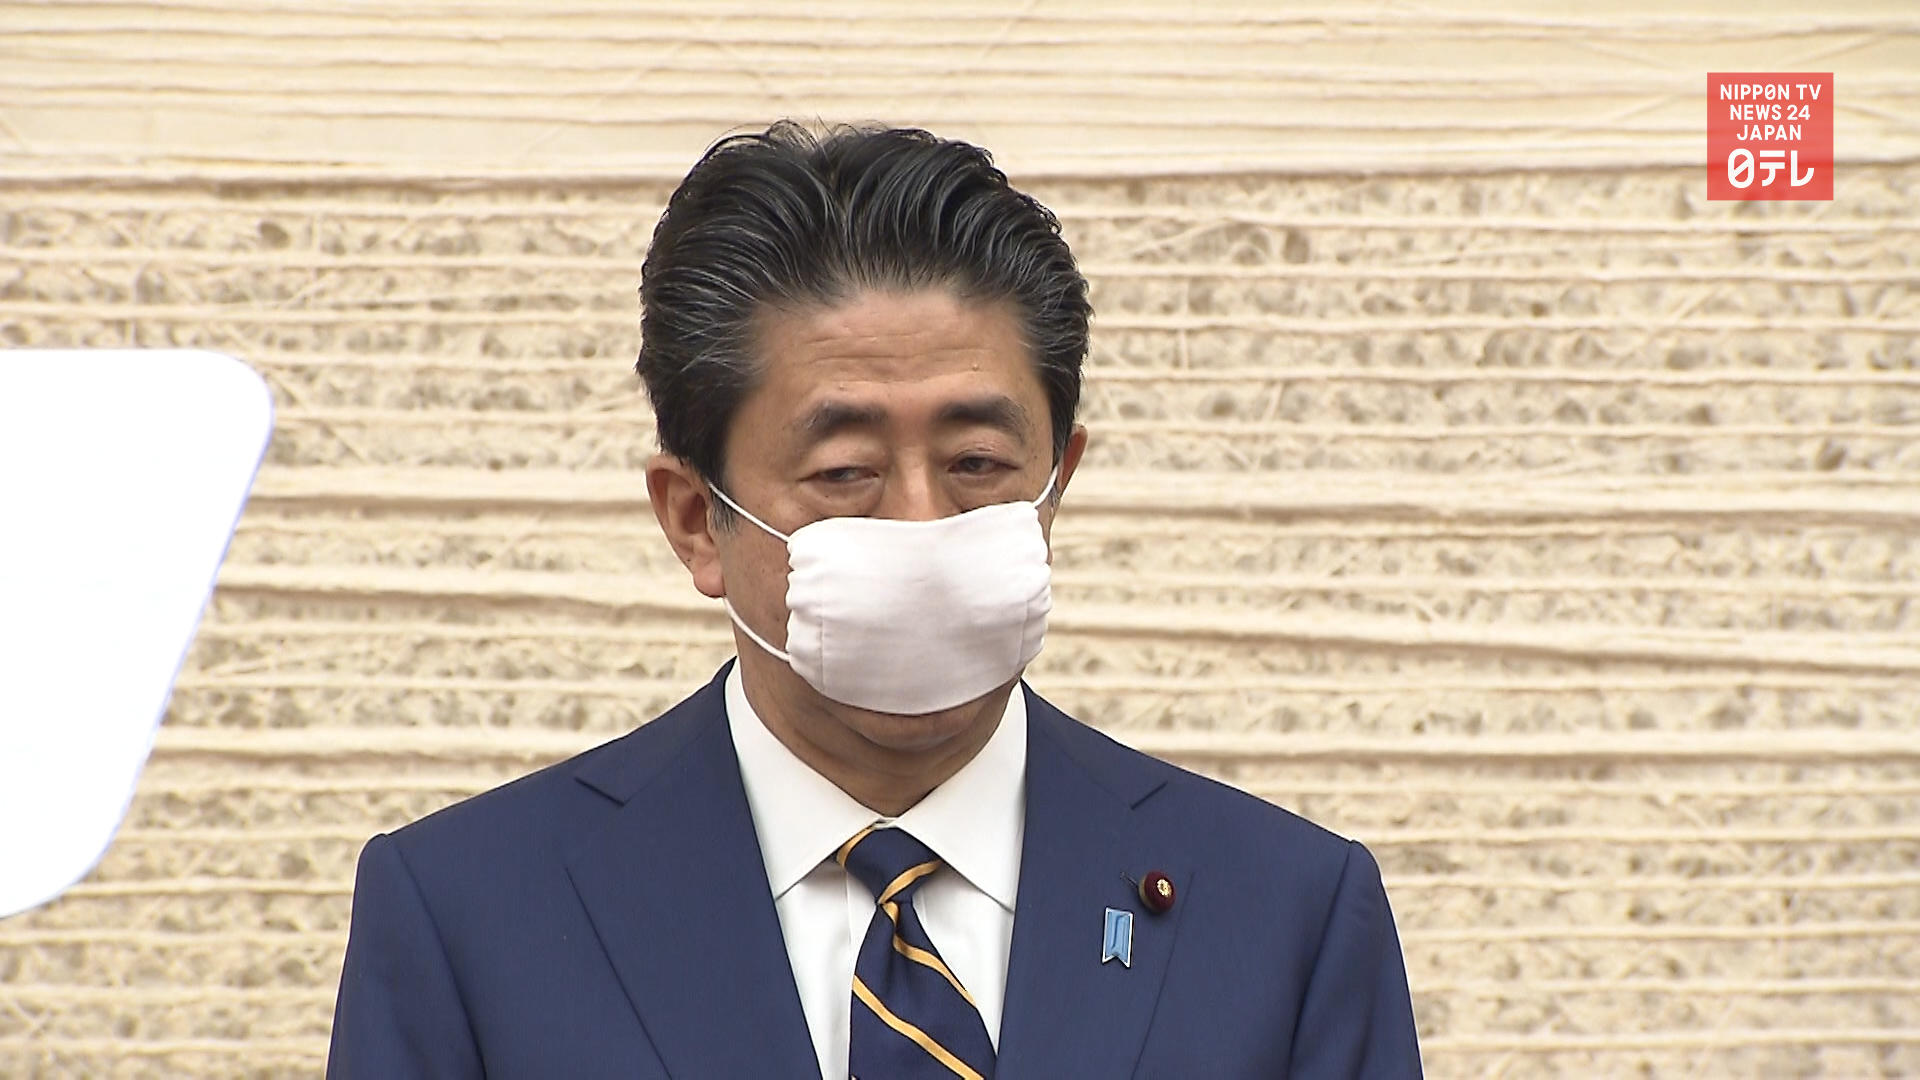 Over 80 percent say Japanese govt. too slow: poll